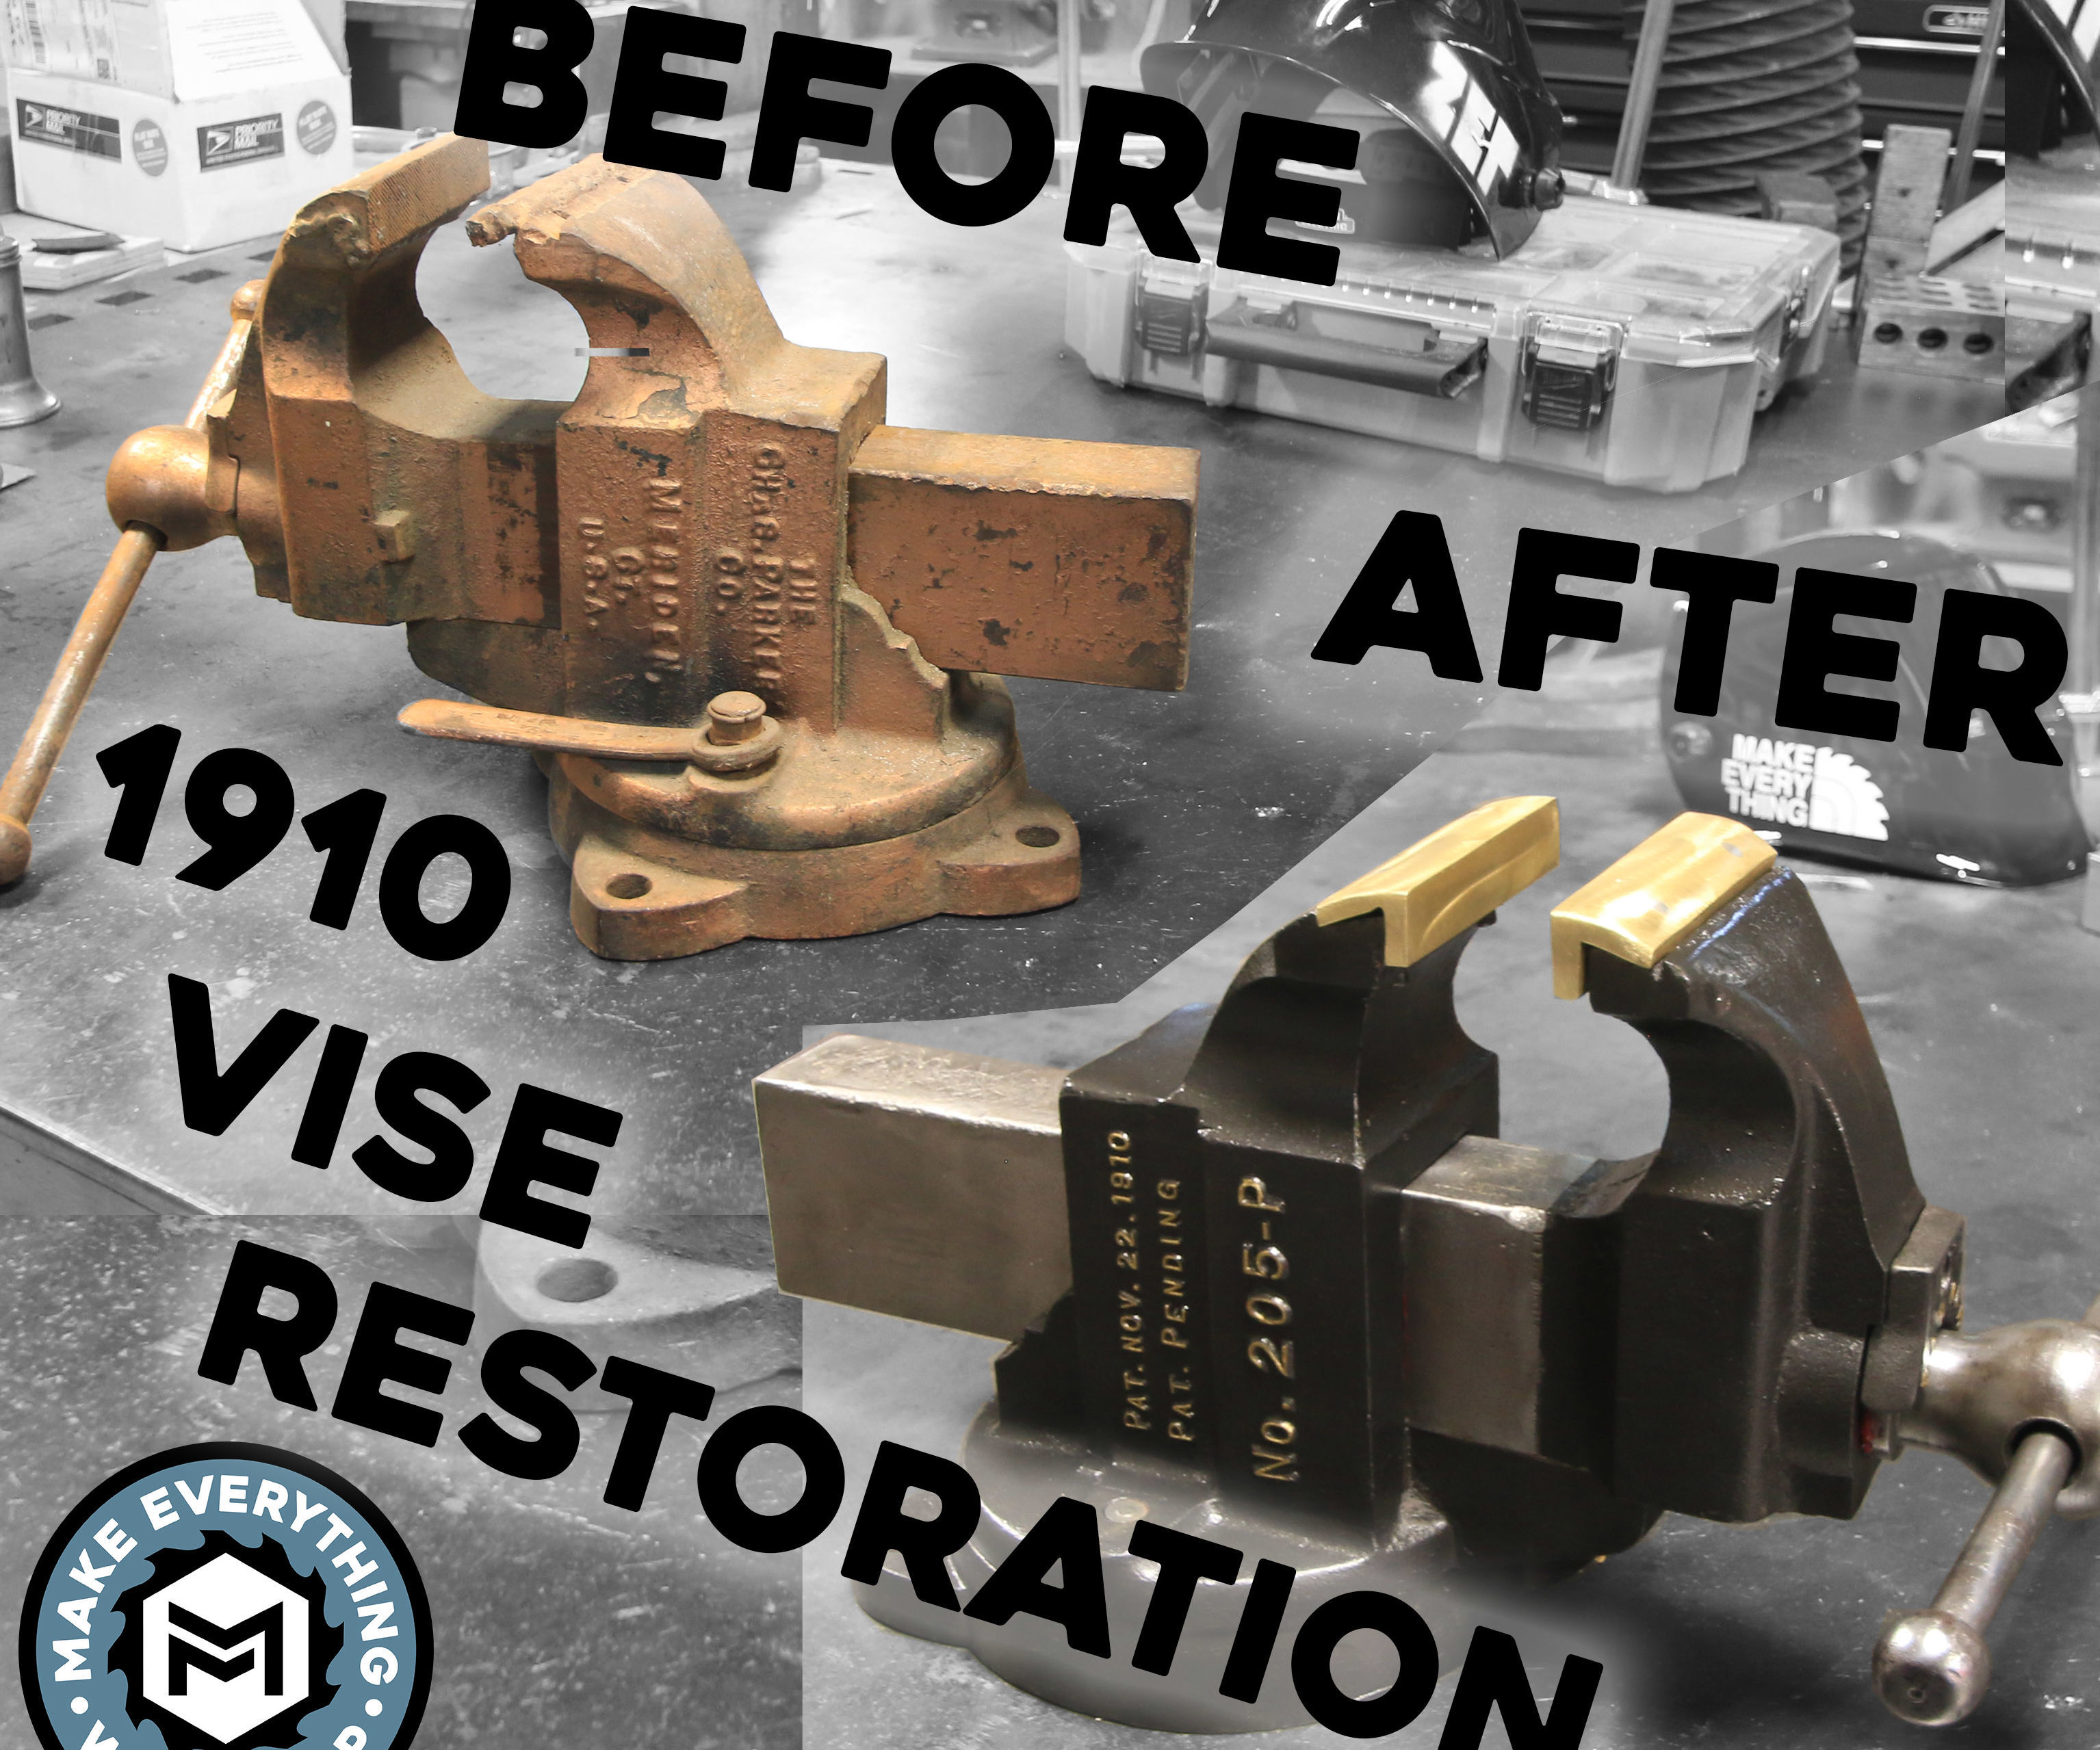 Restoring a 100 Year Old Vise!